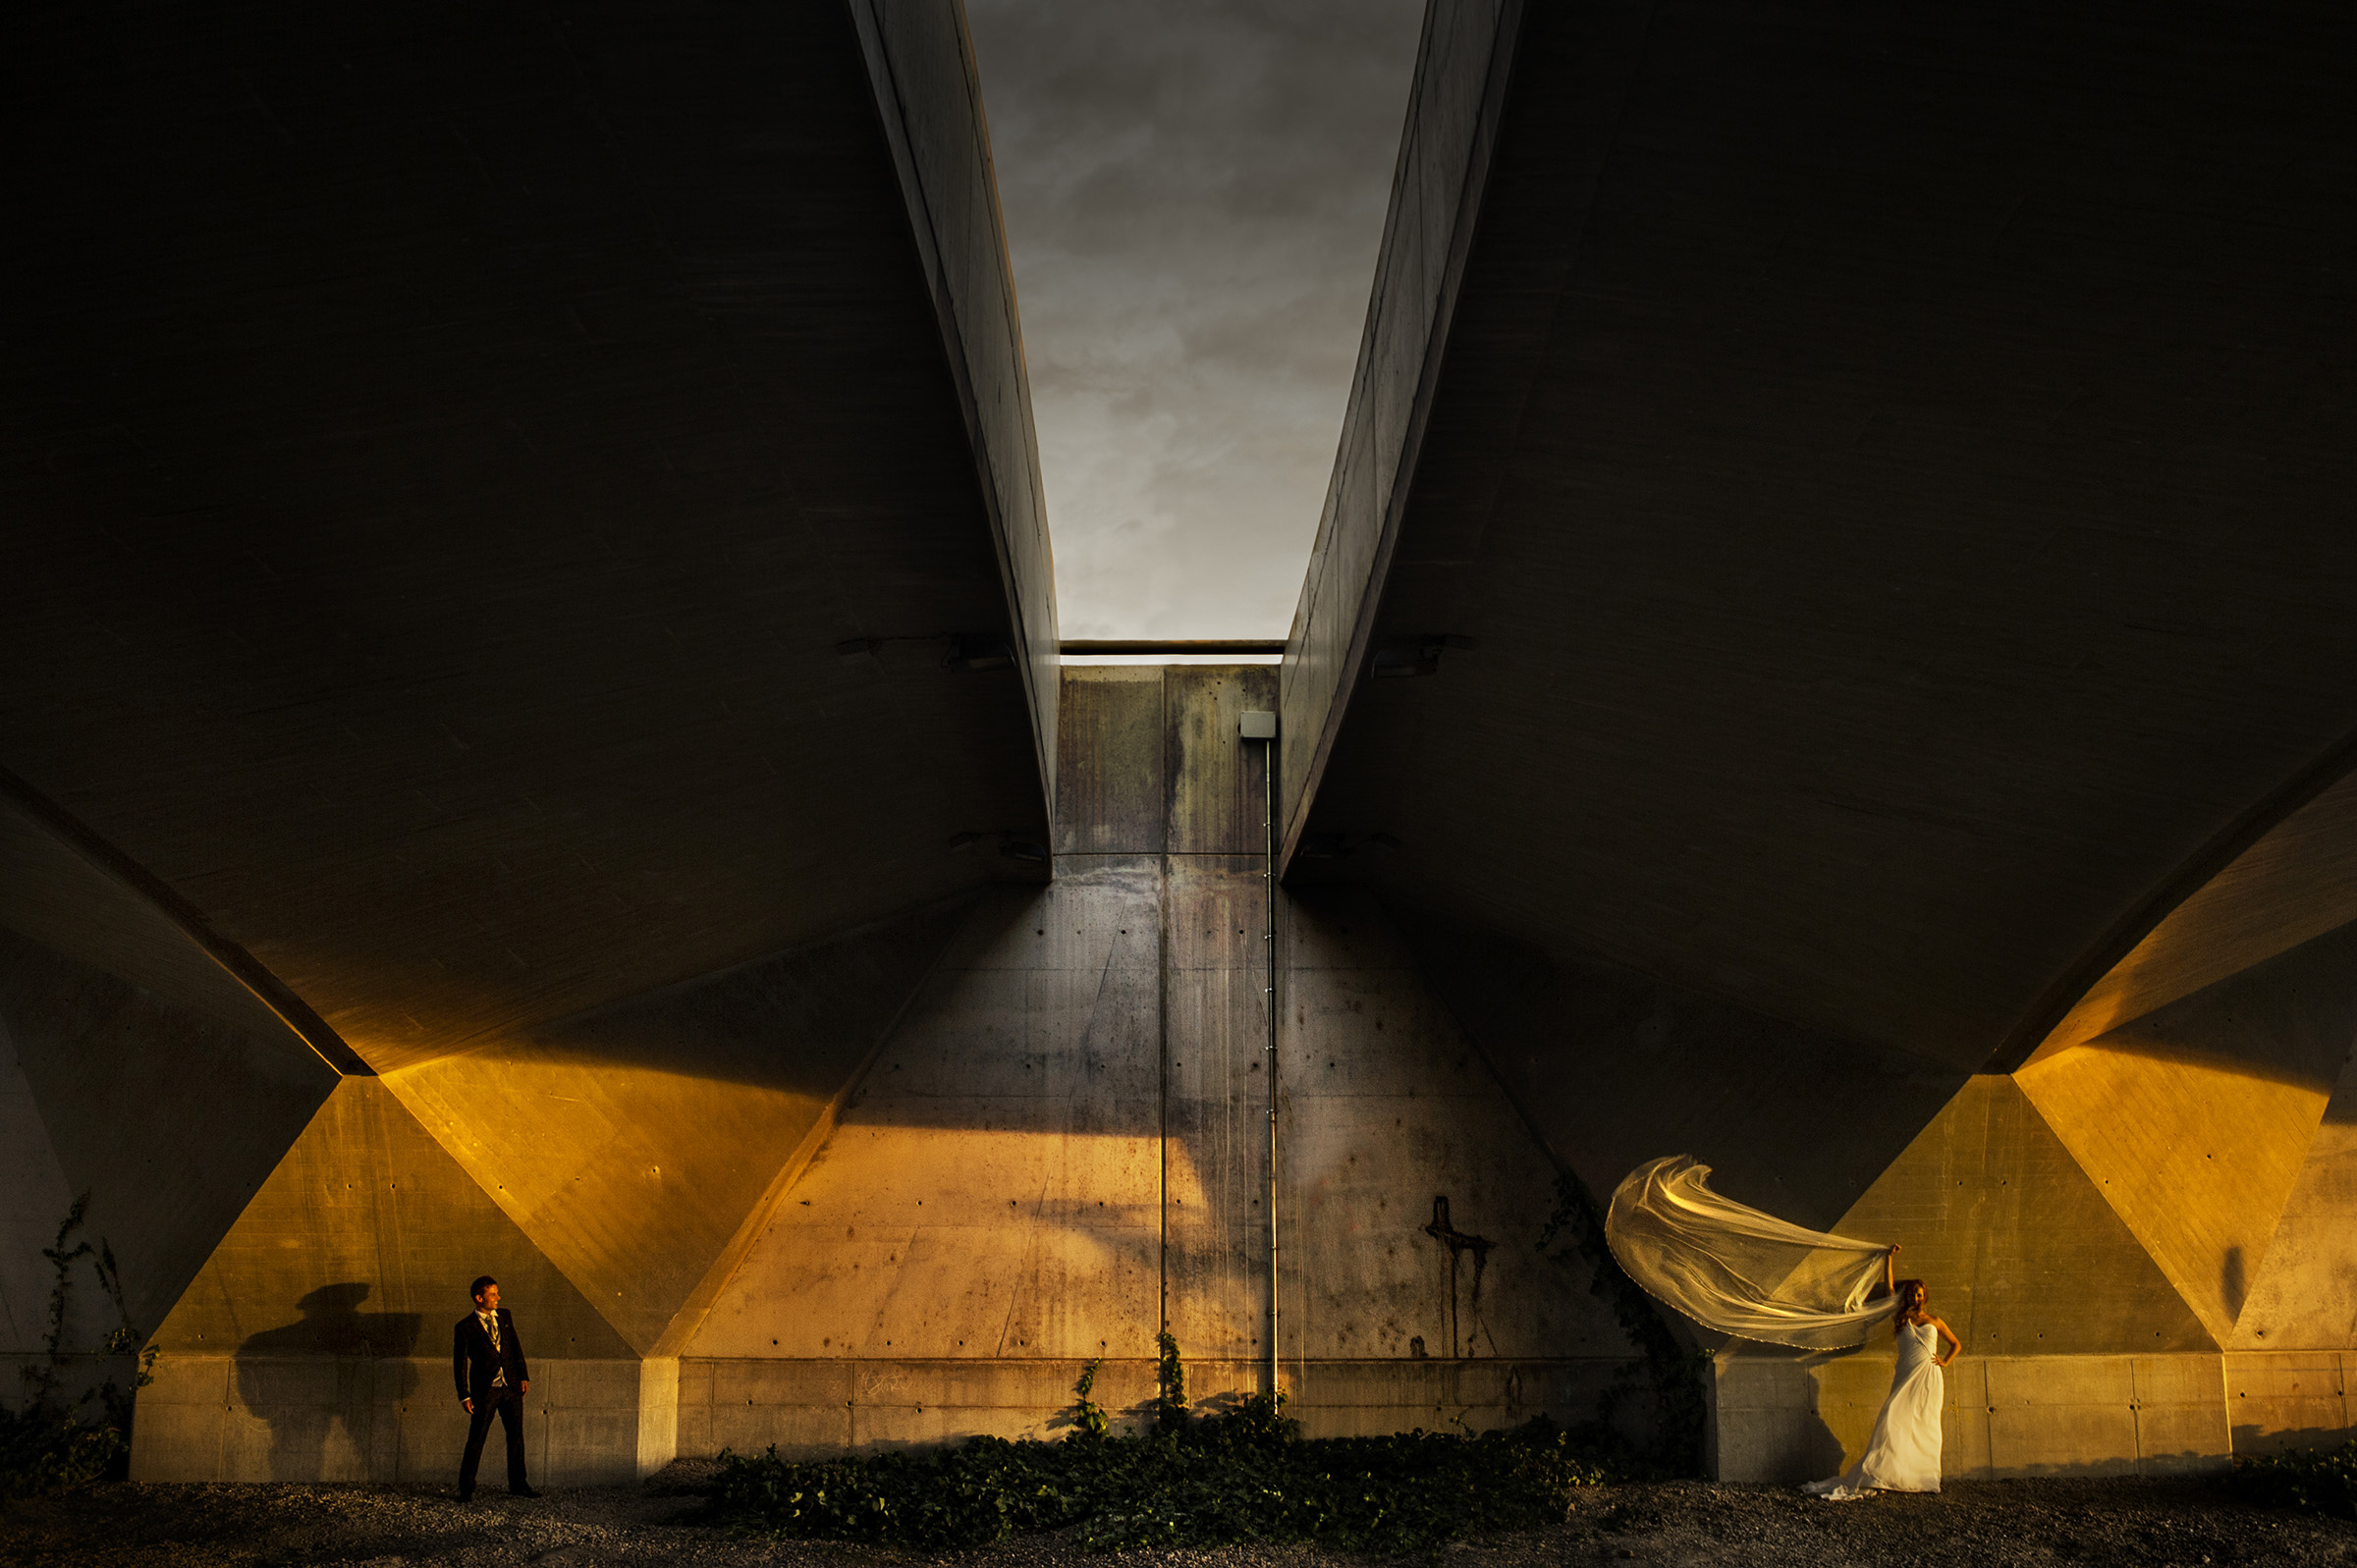 Couple in dramatic architecture and  lighting - photo by Lax Photography